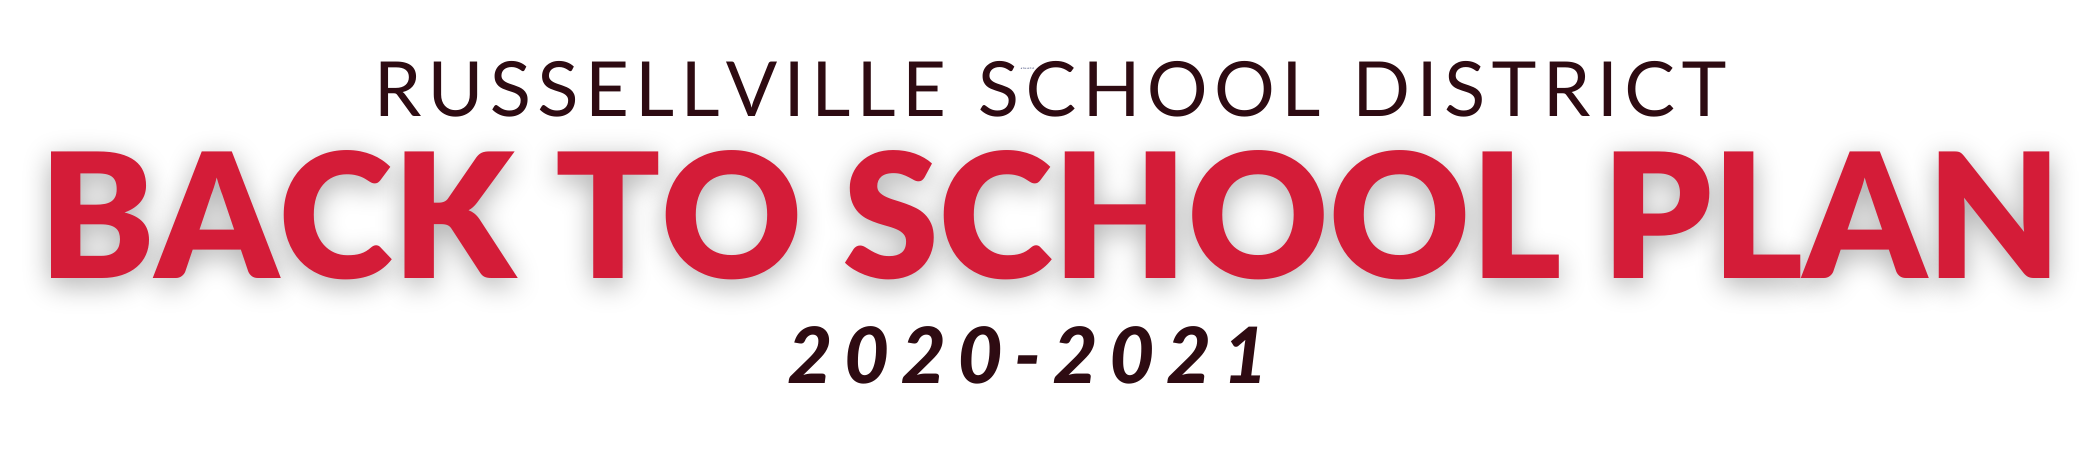 Russellville School District Back to School Plan 2020-2021